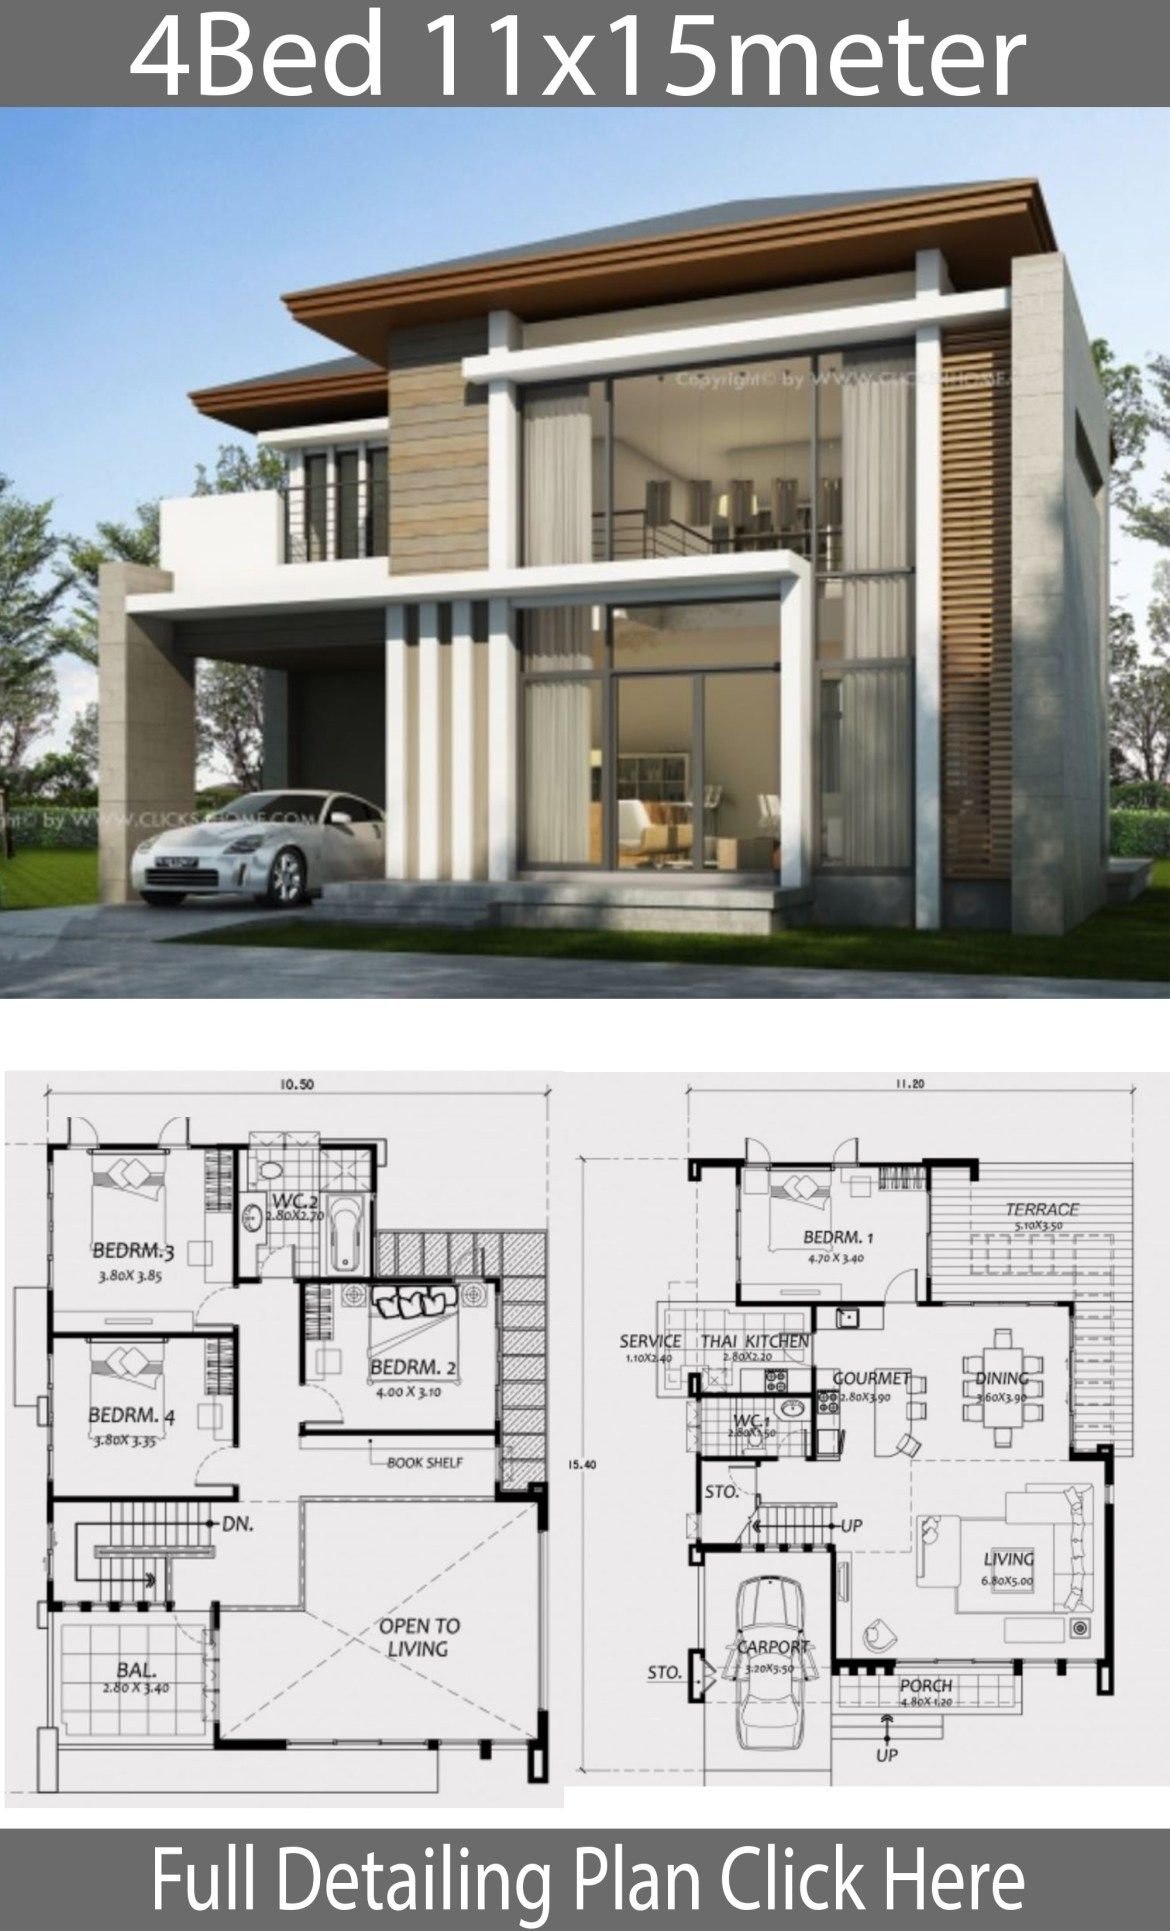 Home Design 11x15m With 4 Bedrooms Home Planssearch Architectural House Plans Duplex House Design House Designs Exterior